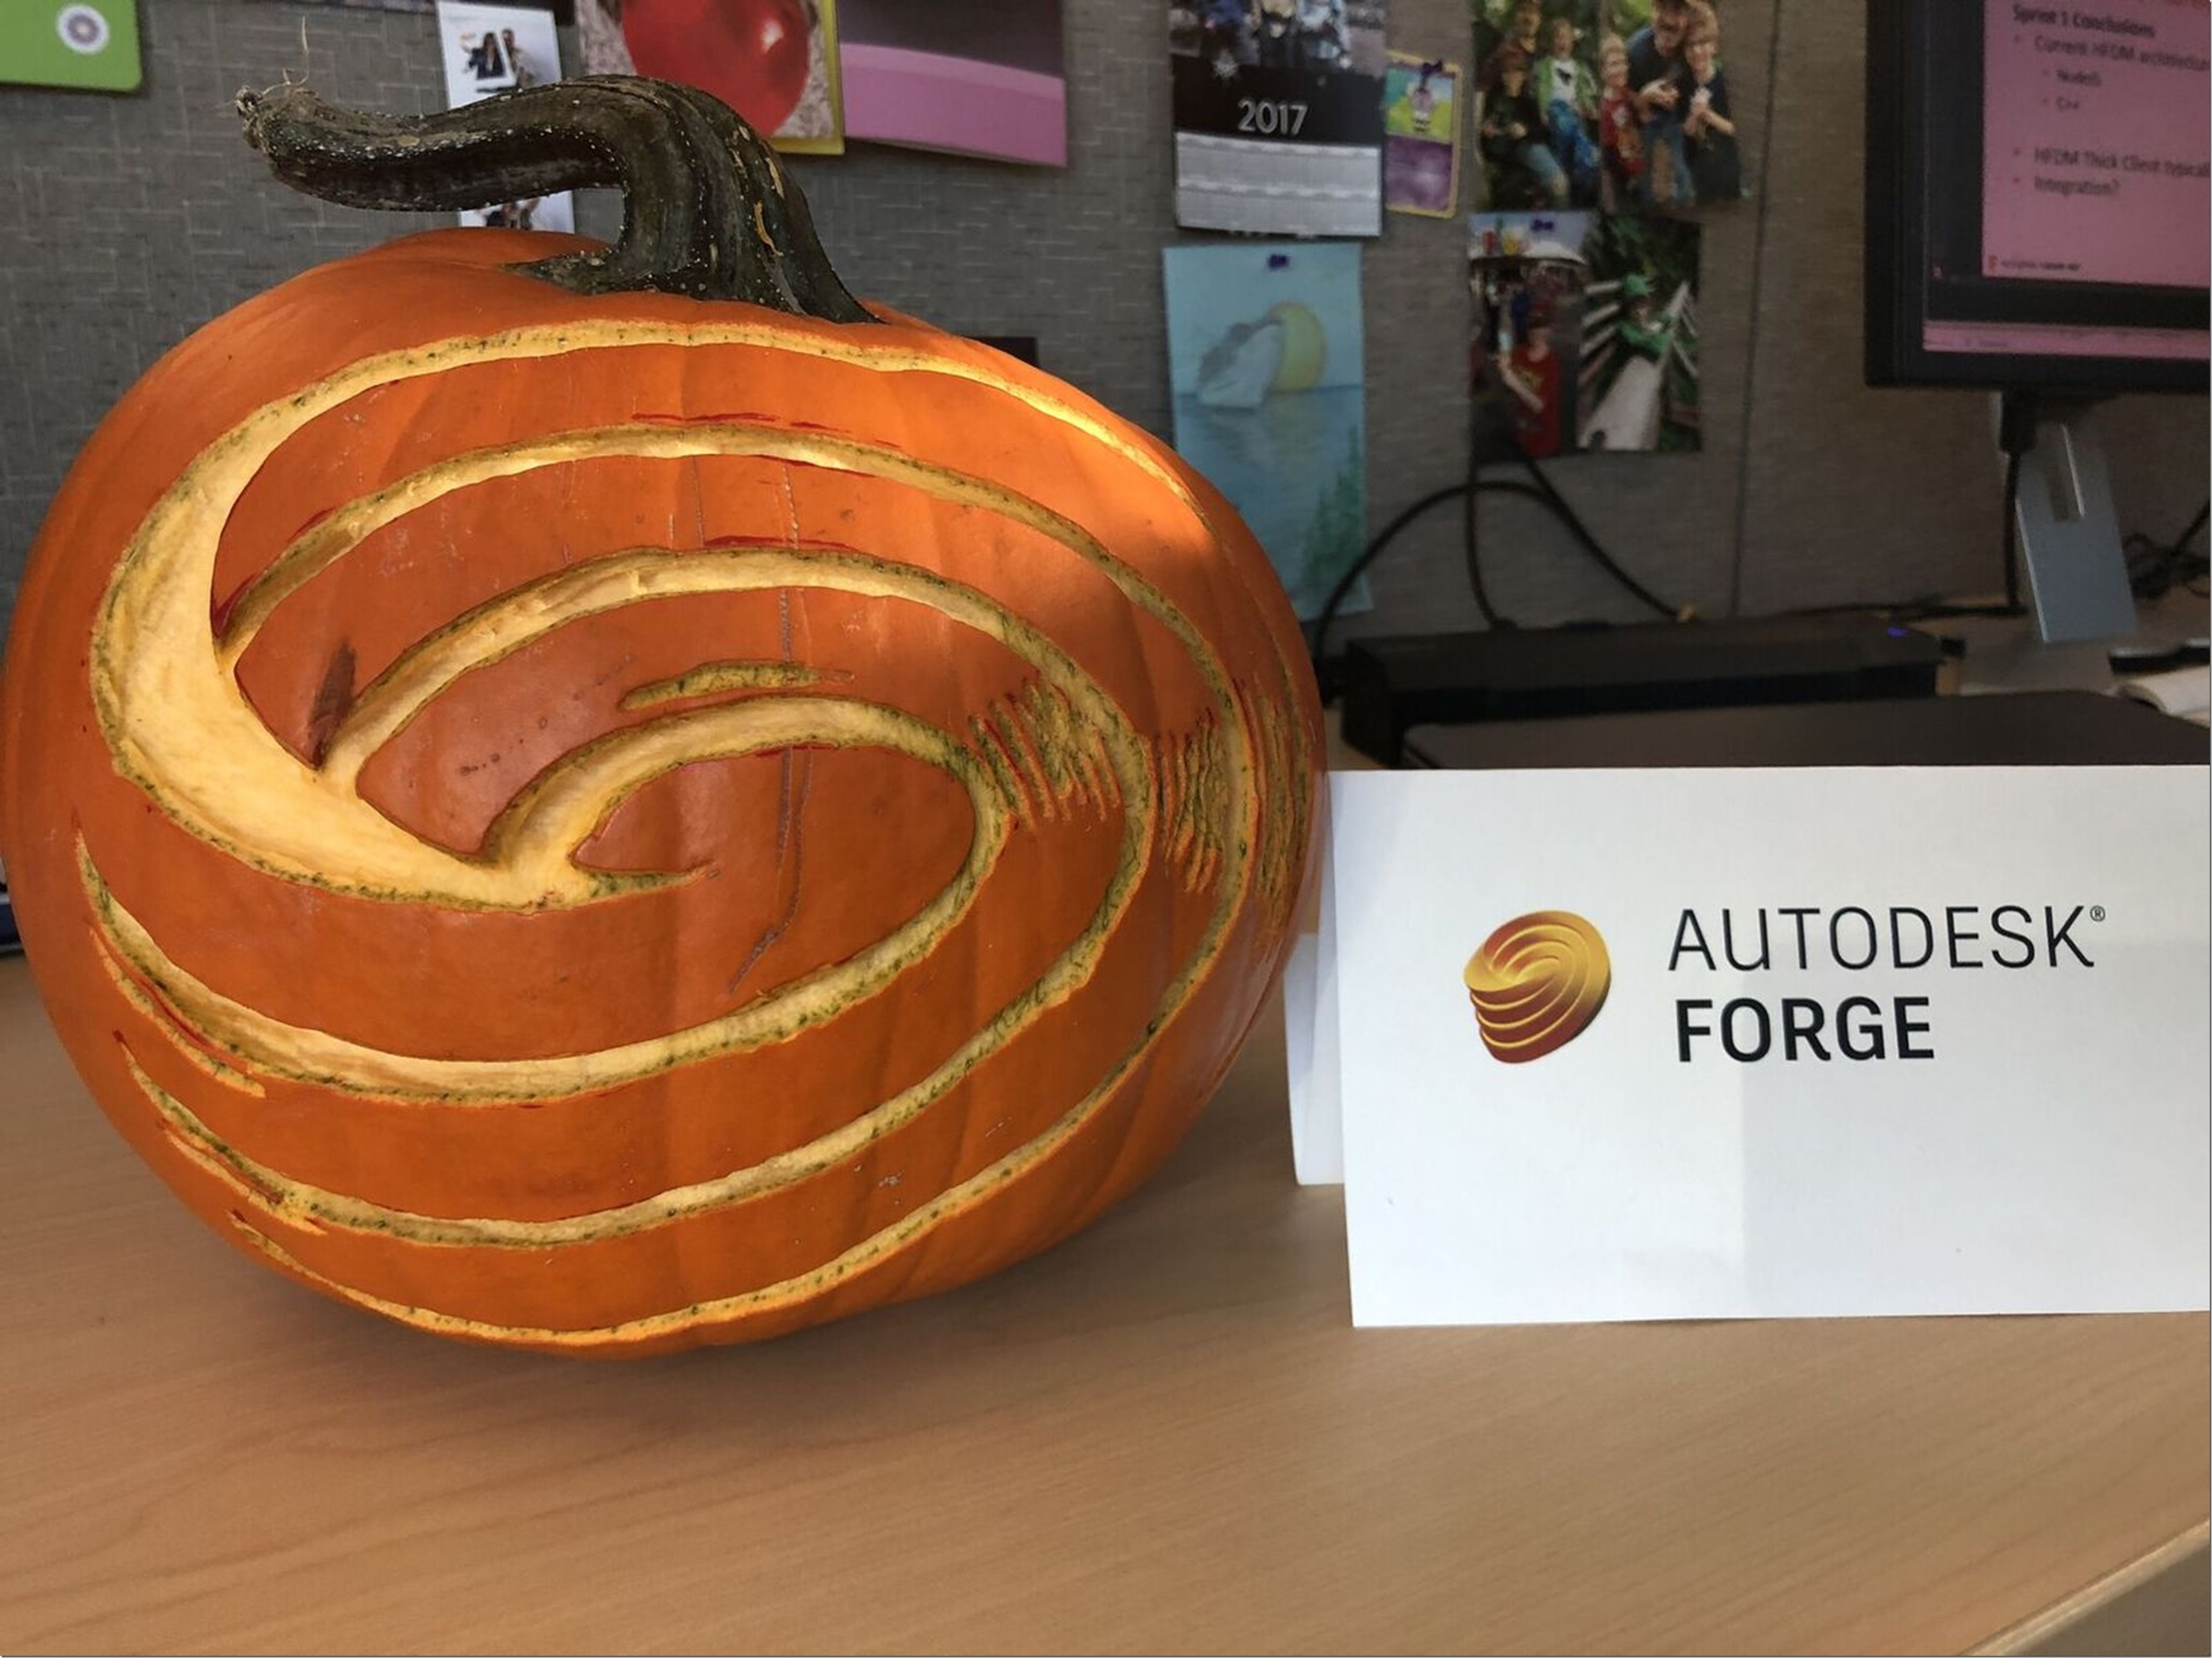 Autodesk Forge Pumpkin by Michelle Stone.